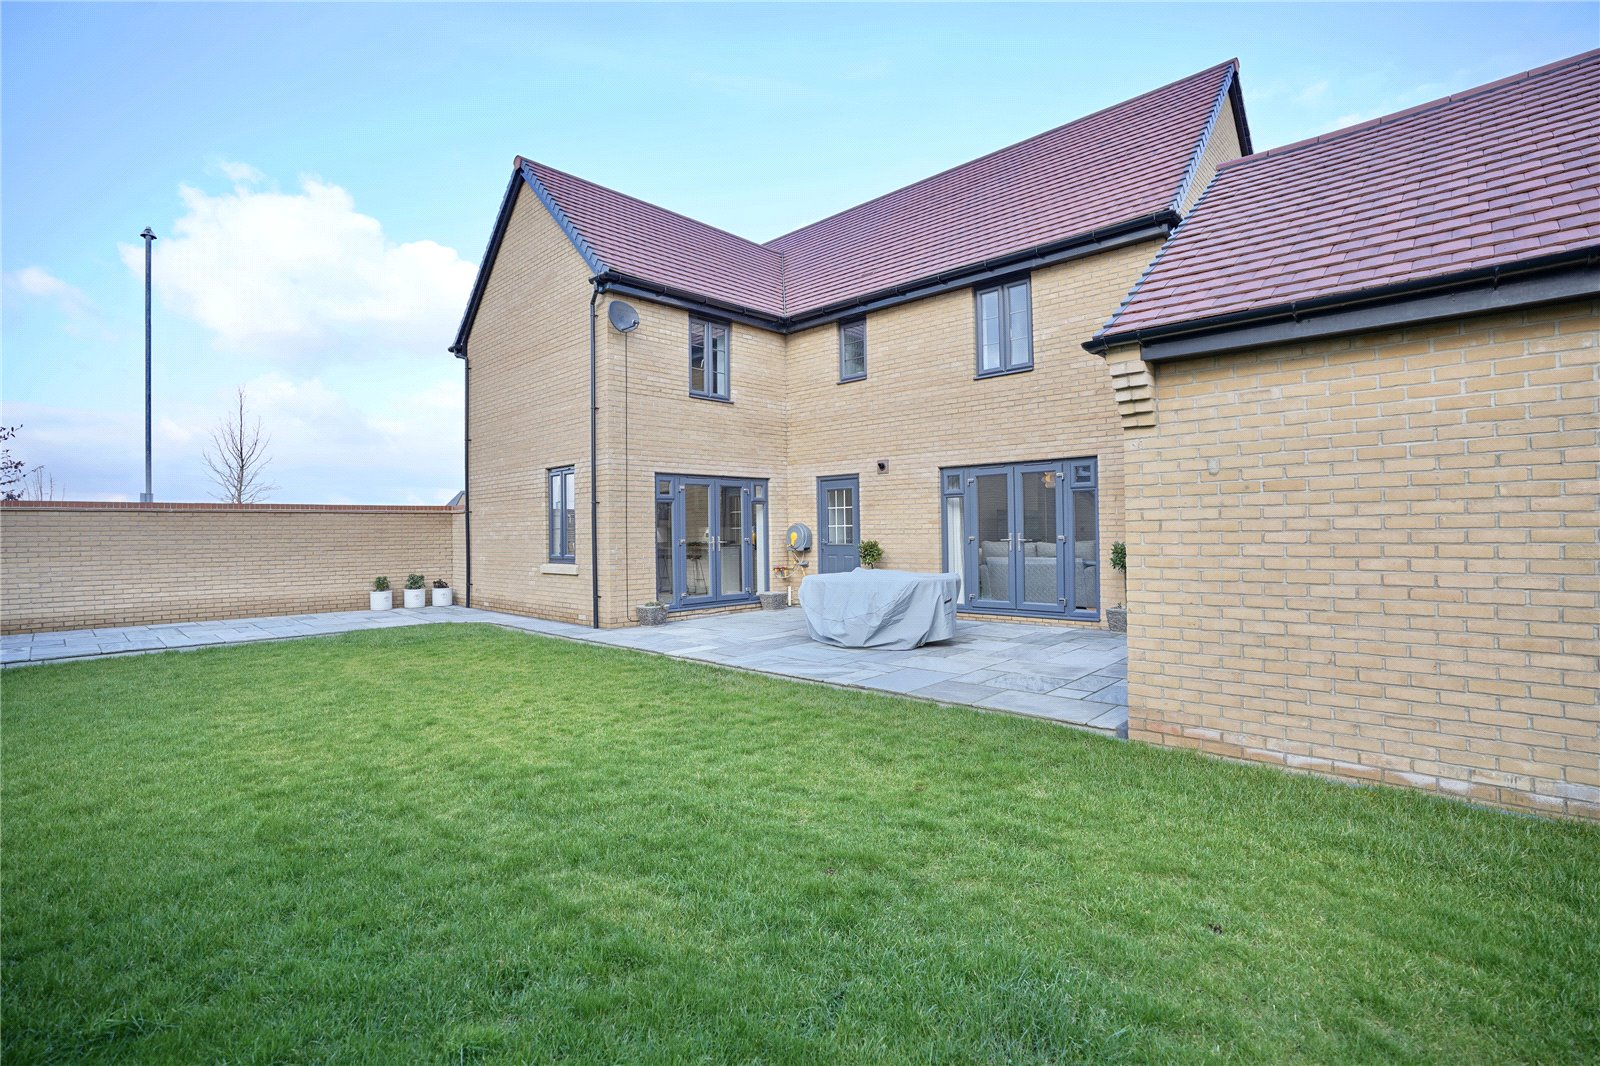 5 bed house for sale in Godmanchester, PE29 2NG  - Property Image 4